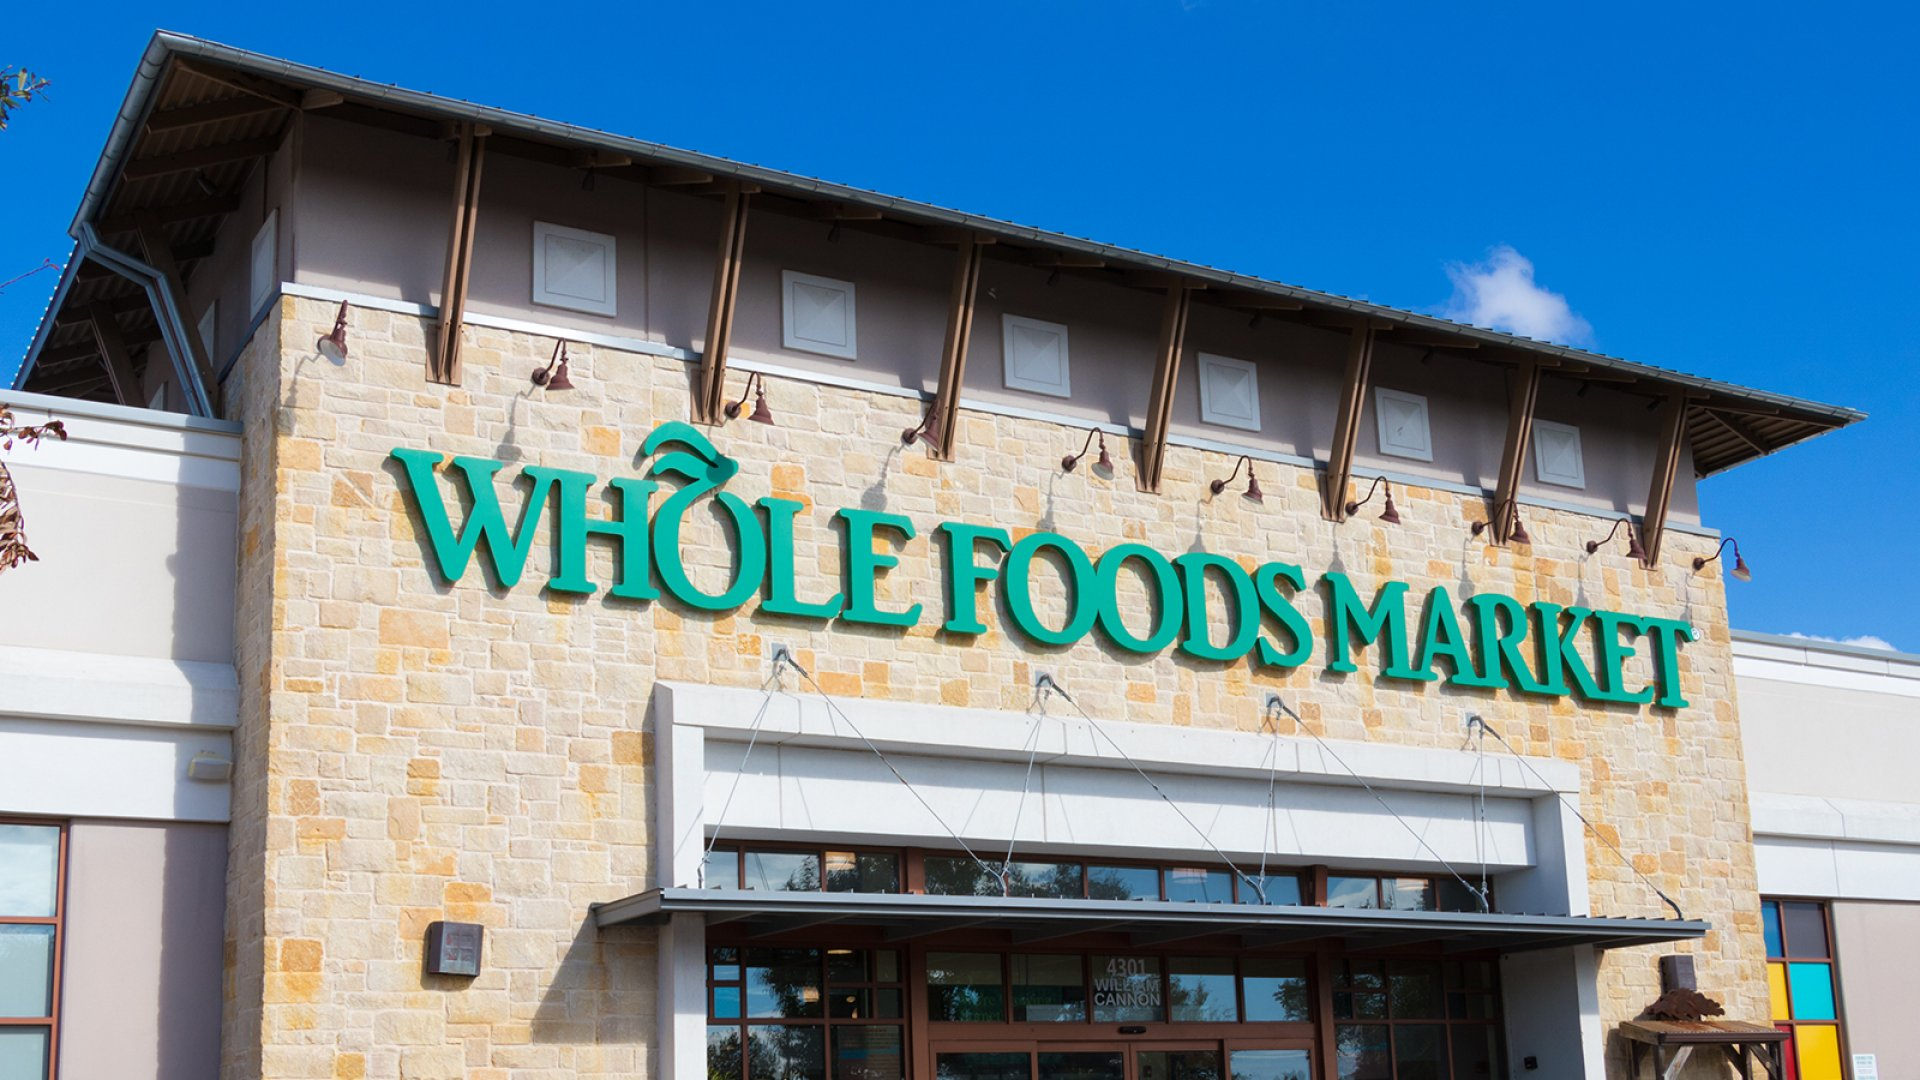 Whole Foods Market in Austin, Texas.